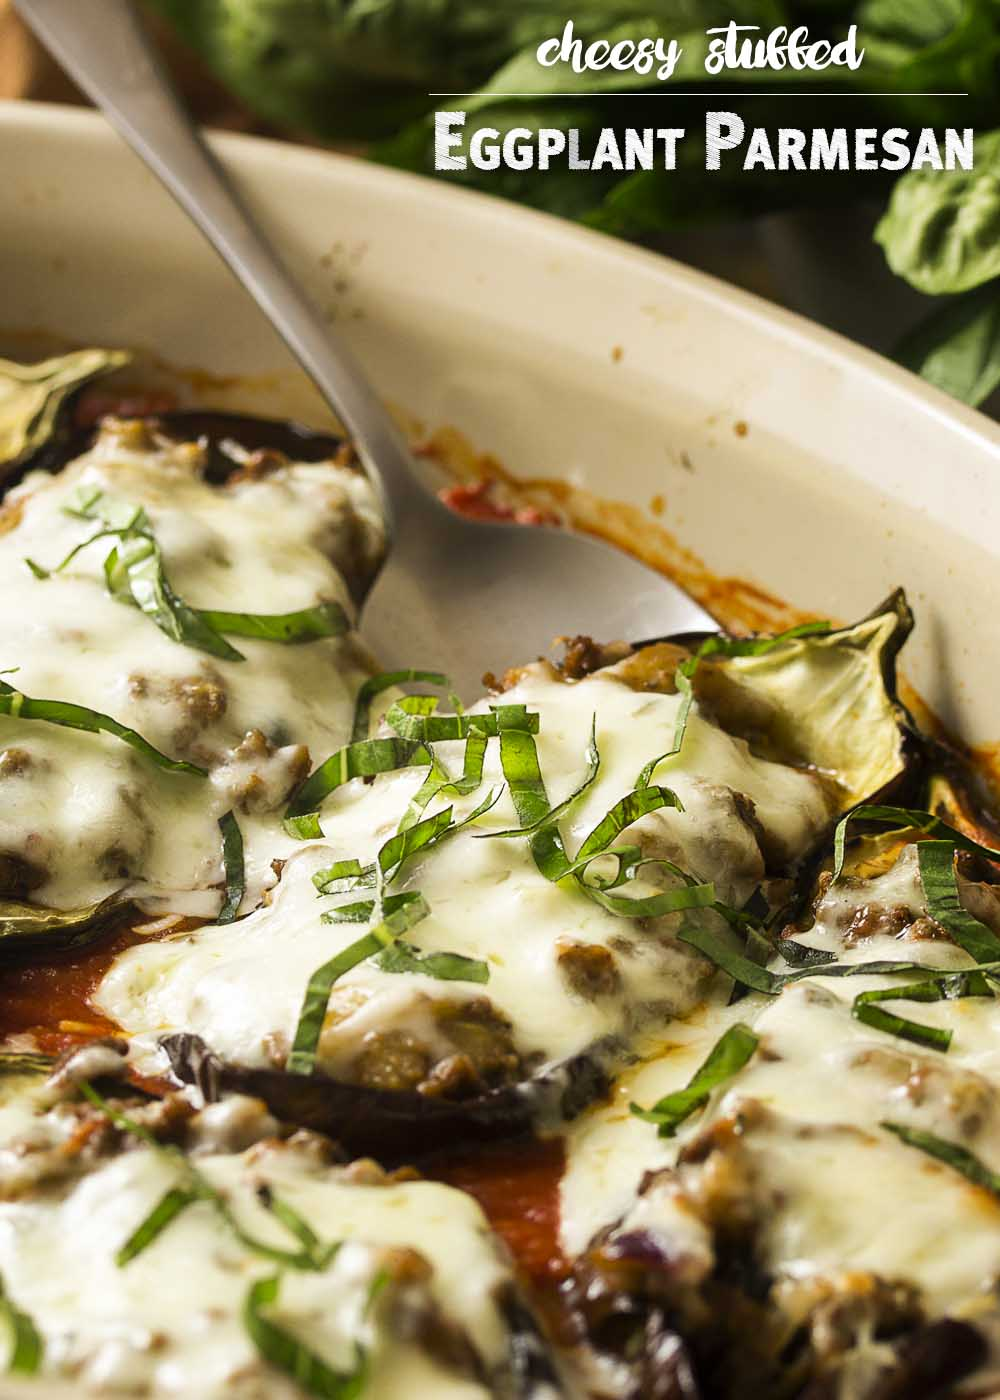 For a fun and tasty way to enjoy eggplant, try stuffed eggplant parmesan! The eggplants are stuffed with ground beef, topped with plenty of mozzarella cheese, and baked in the oven until browned and gooey. Gluten-free. | justalittlebitofbacon.com